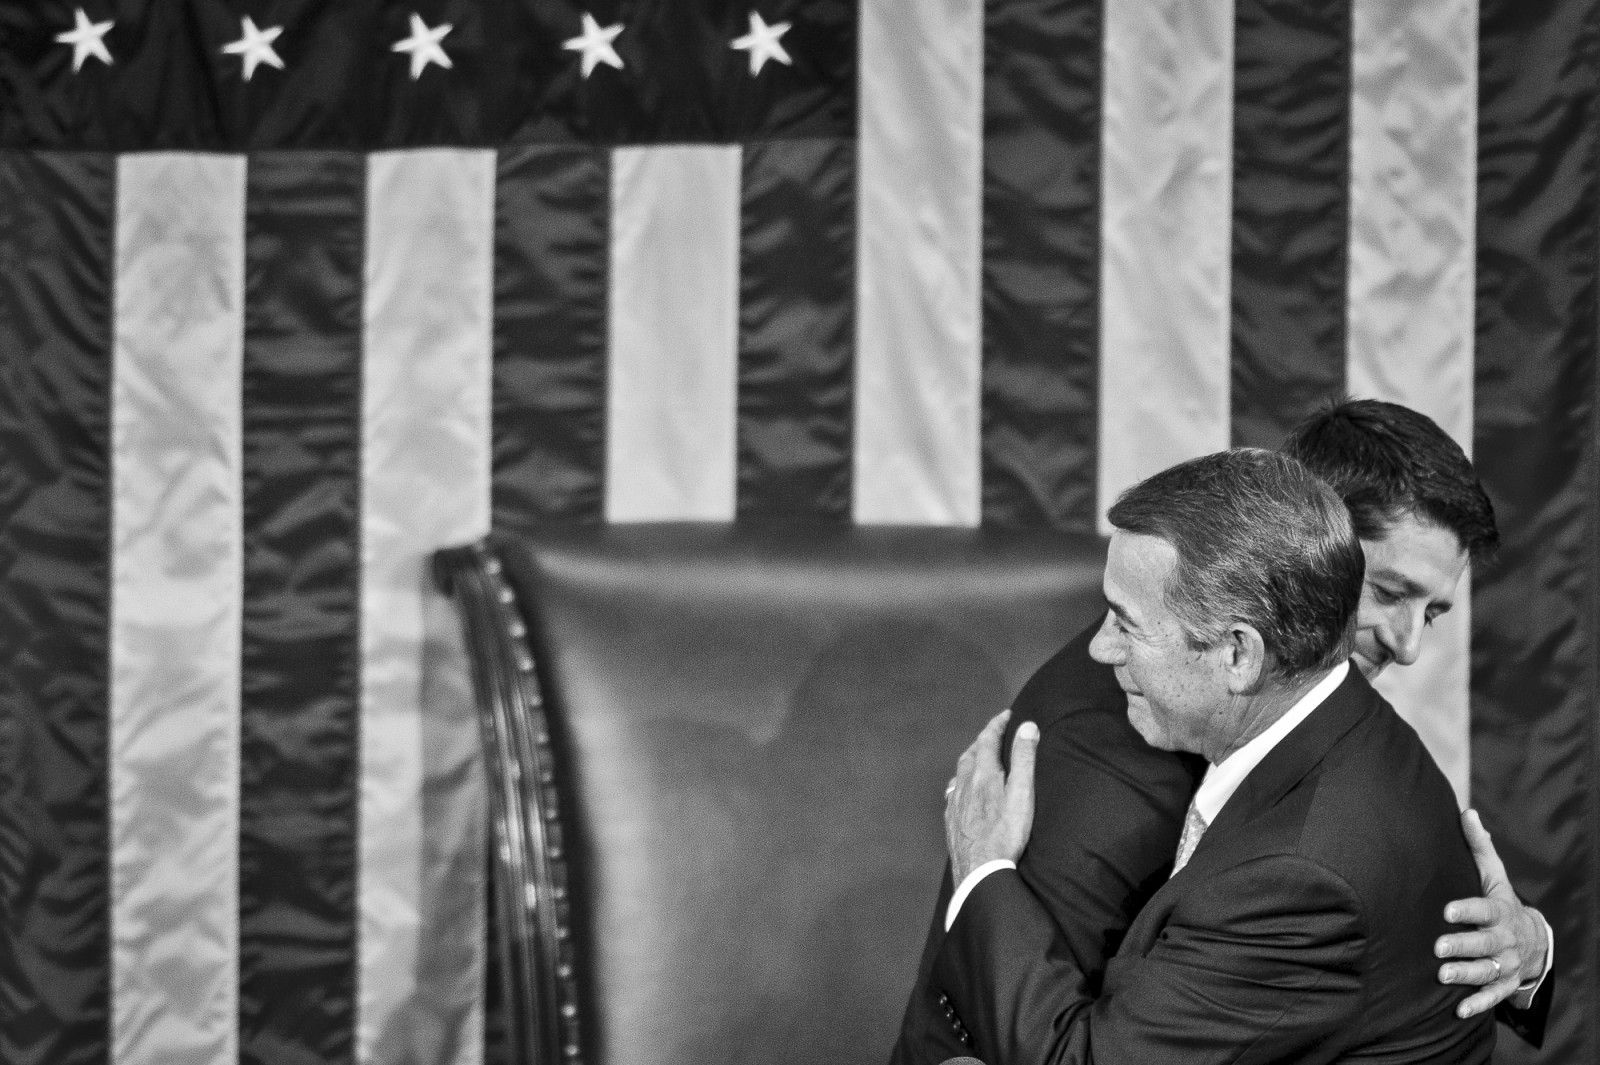 Rep. Paul Ryan (R-WI) is welcomed by Speaker of the House John Boehner (R-OH) after being elected Speaker of the House of Representatives on October 29, 2015 in Washington, D.C. Earlier the outgoing Speaker, Rep. John Boehner (R-OH), gave his farewell address to Congress. He is retiring on October 30, 2015. Photo by Pete Marovich/UPI